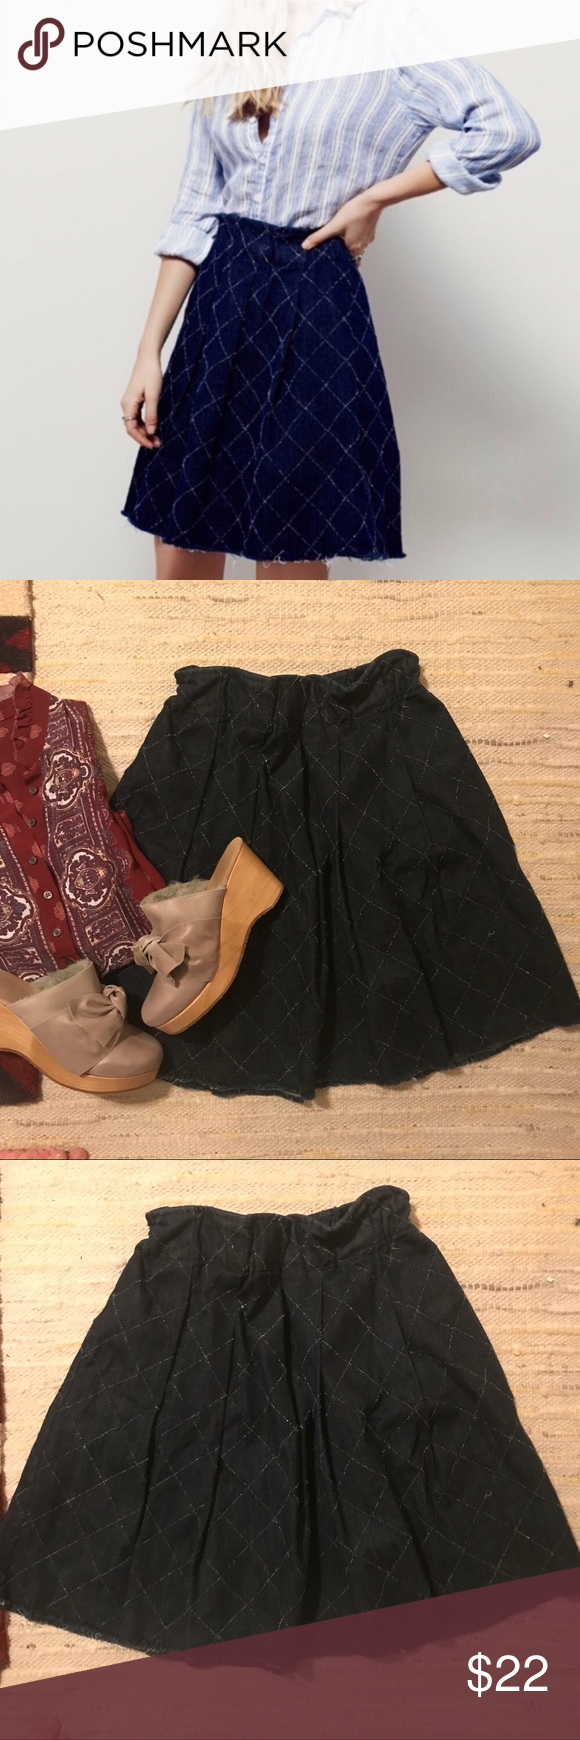 Free People • baby love denim skirt Soft denim swingy a-line skirt with embroidery.  Elastic waist.  Size small, fits like a 4-6 IMO.  Made in USA 🇺🇸 Color is closer to the stock photo maybe not quite as bright.  I just didn't have good light when I took my pics. Free People Skirts A-Line or Full